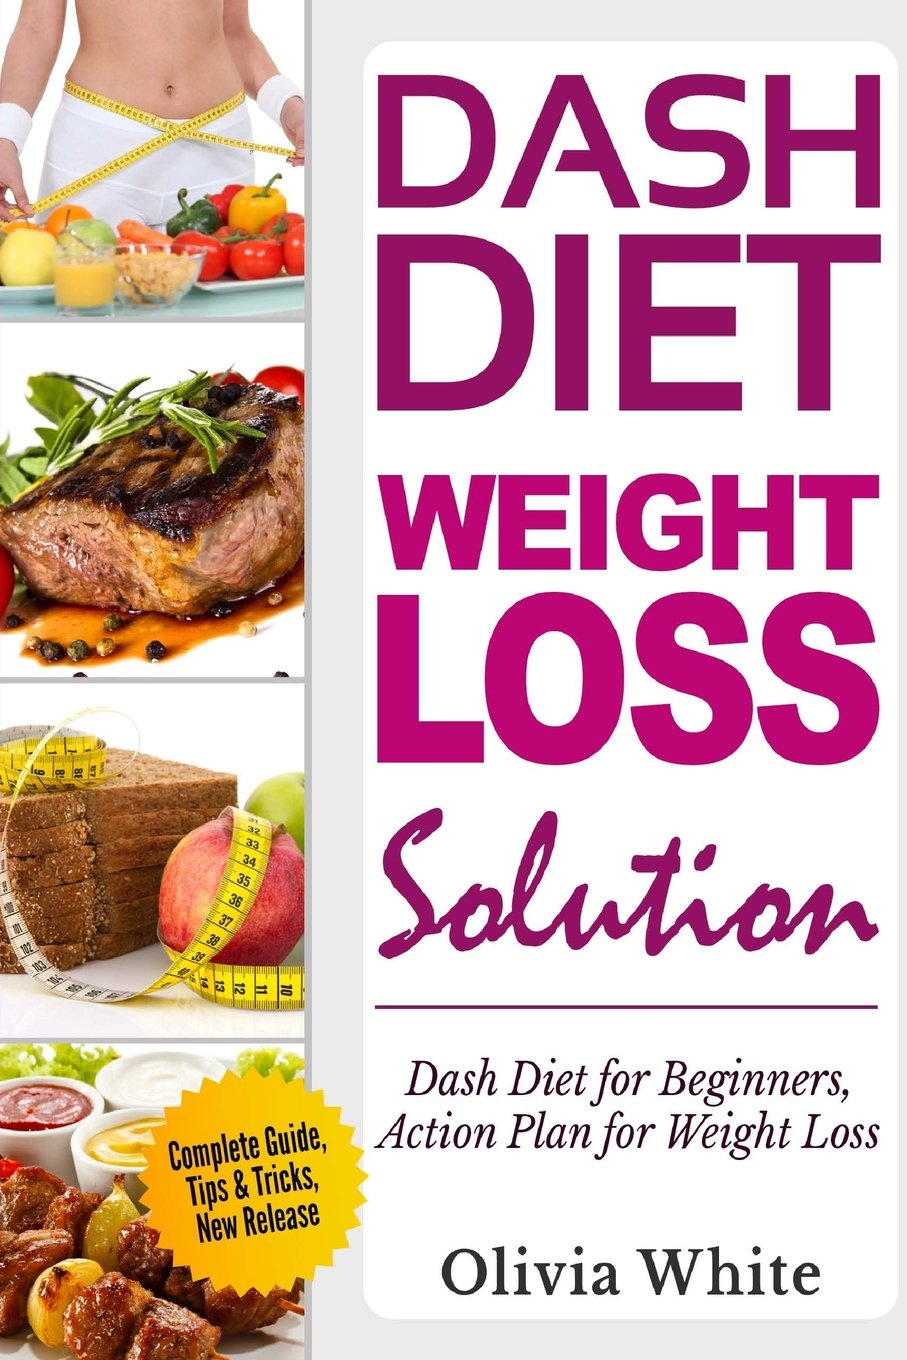 Read Online Dash Diet Weight Loss Solution: Dash Diet for Beginners, Action Plan for Weight Loss, Complete Guide, Tips & Tricks, New Release pdf epub